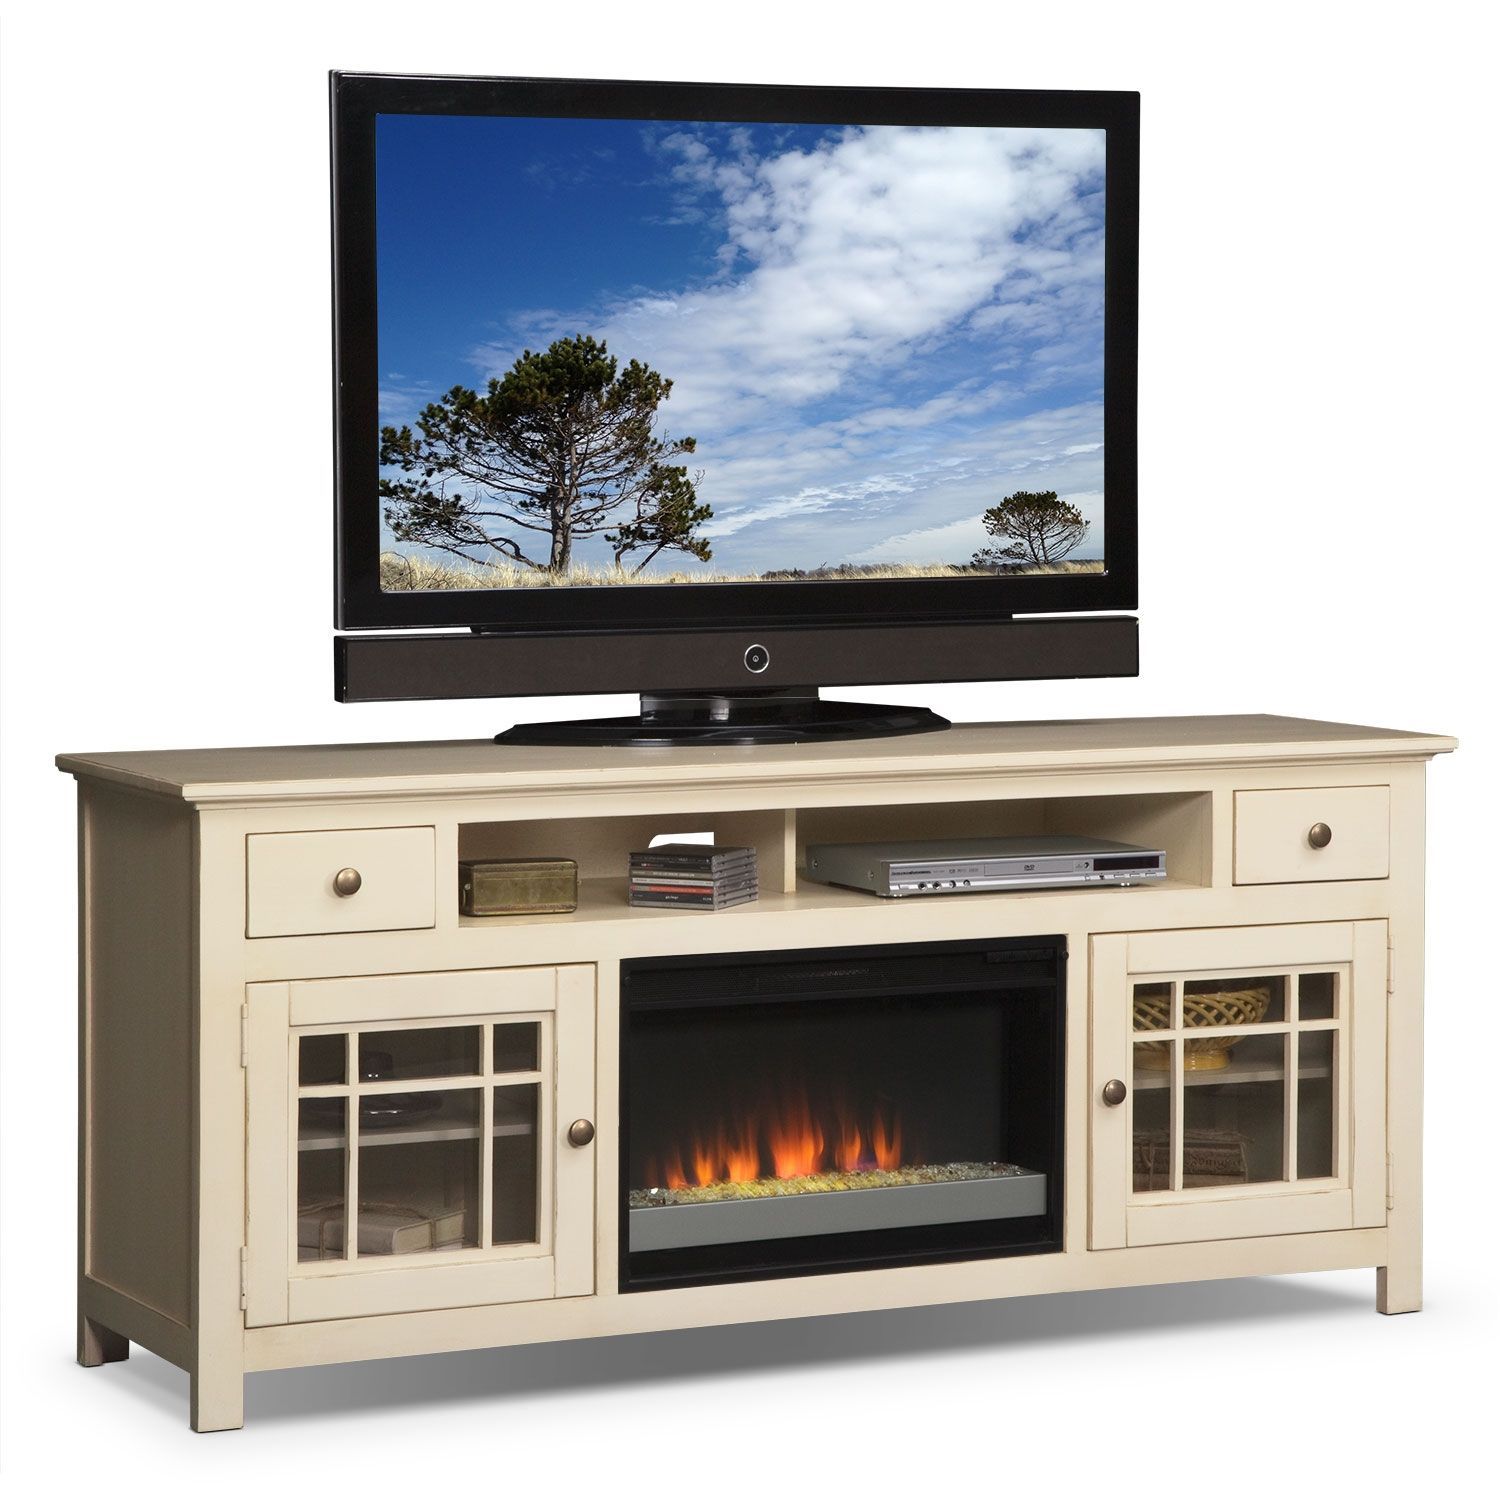 Pin By Kerri Wabler On Frontroom Remodel Fireplace Tv Stand